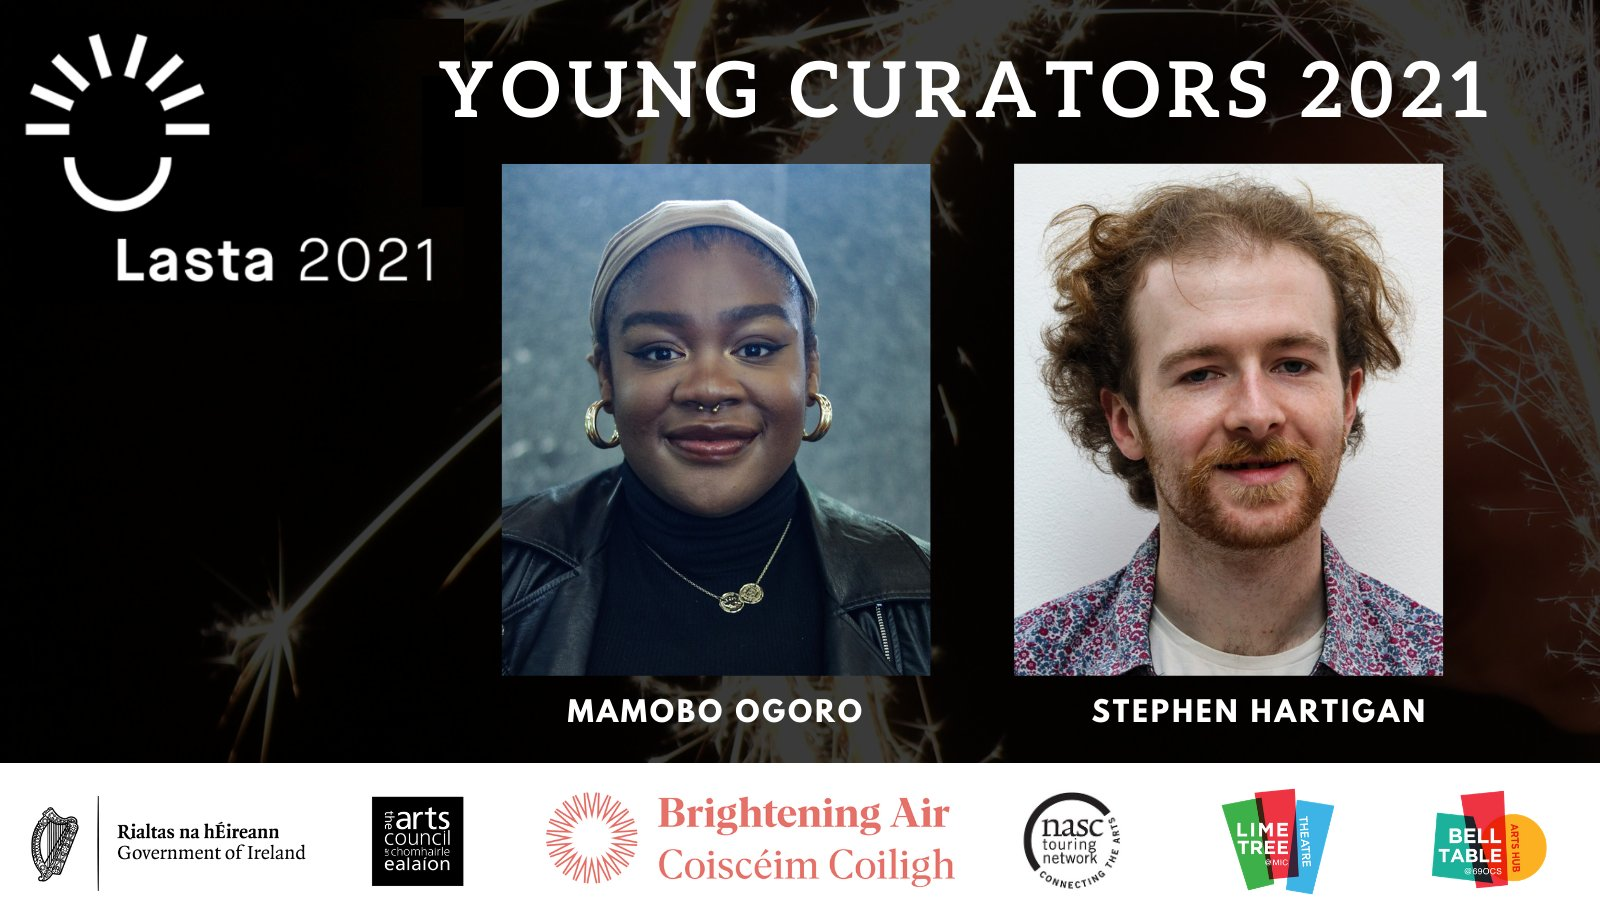 Lasta 2021 is being presented as part of Brightening Air and Coiscéim Coiligh, a nationwide, ten day season of arts experiences brought to you by the Arts Council. The two Young Curators who will programme Lime Tree Theatre | Belltable contribution to Lasta are Mamobo Ogoro and Stephen Hartigan pictured above.